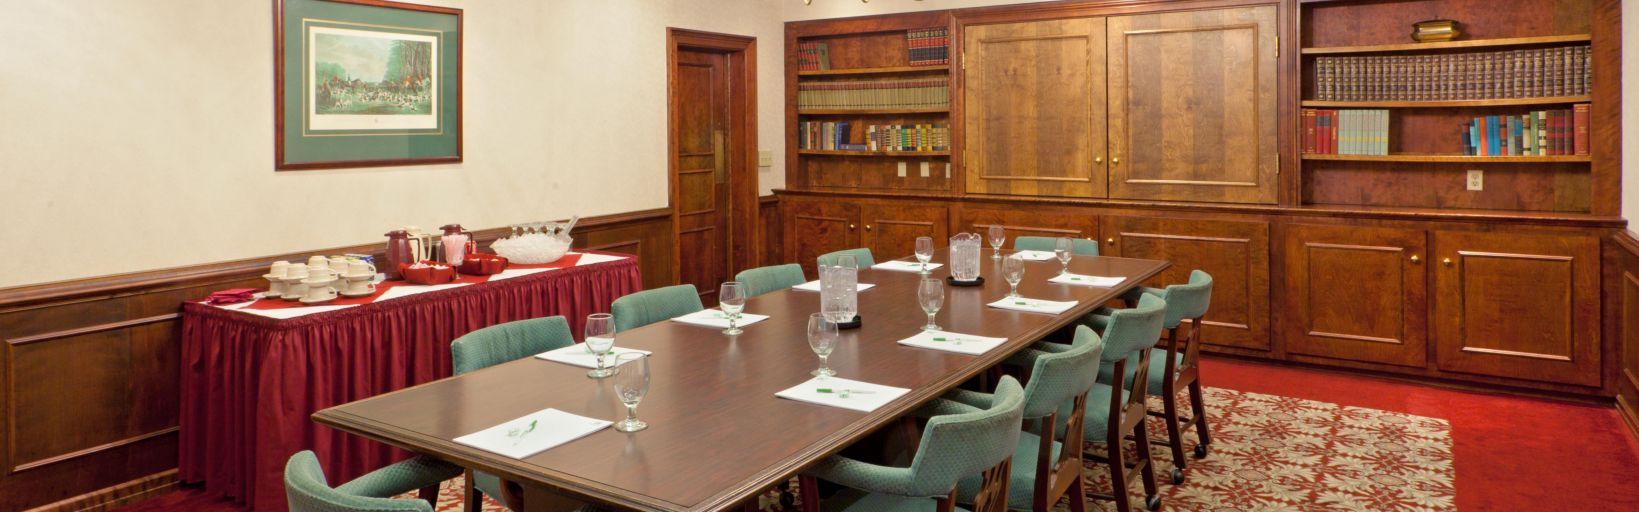 Holiday Inn Staunton meeting room